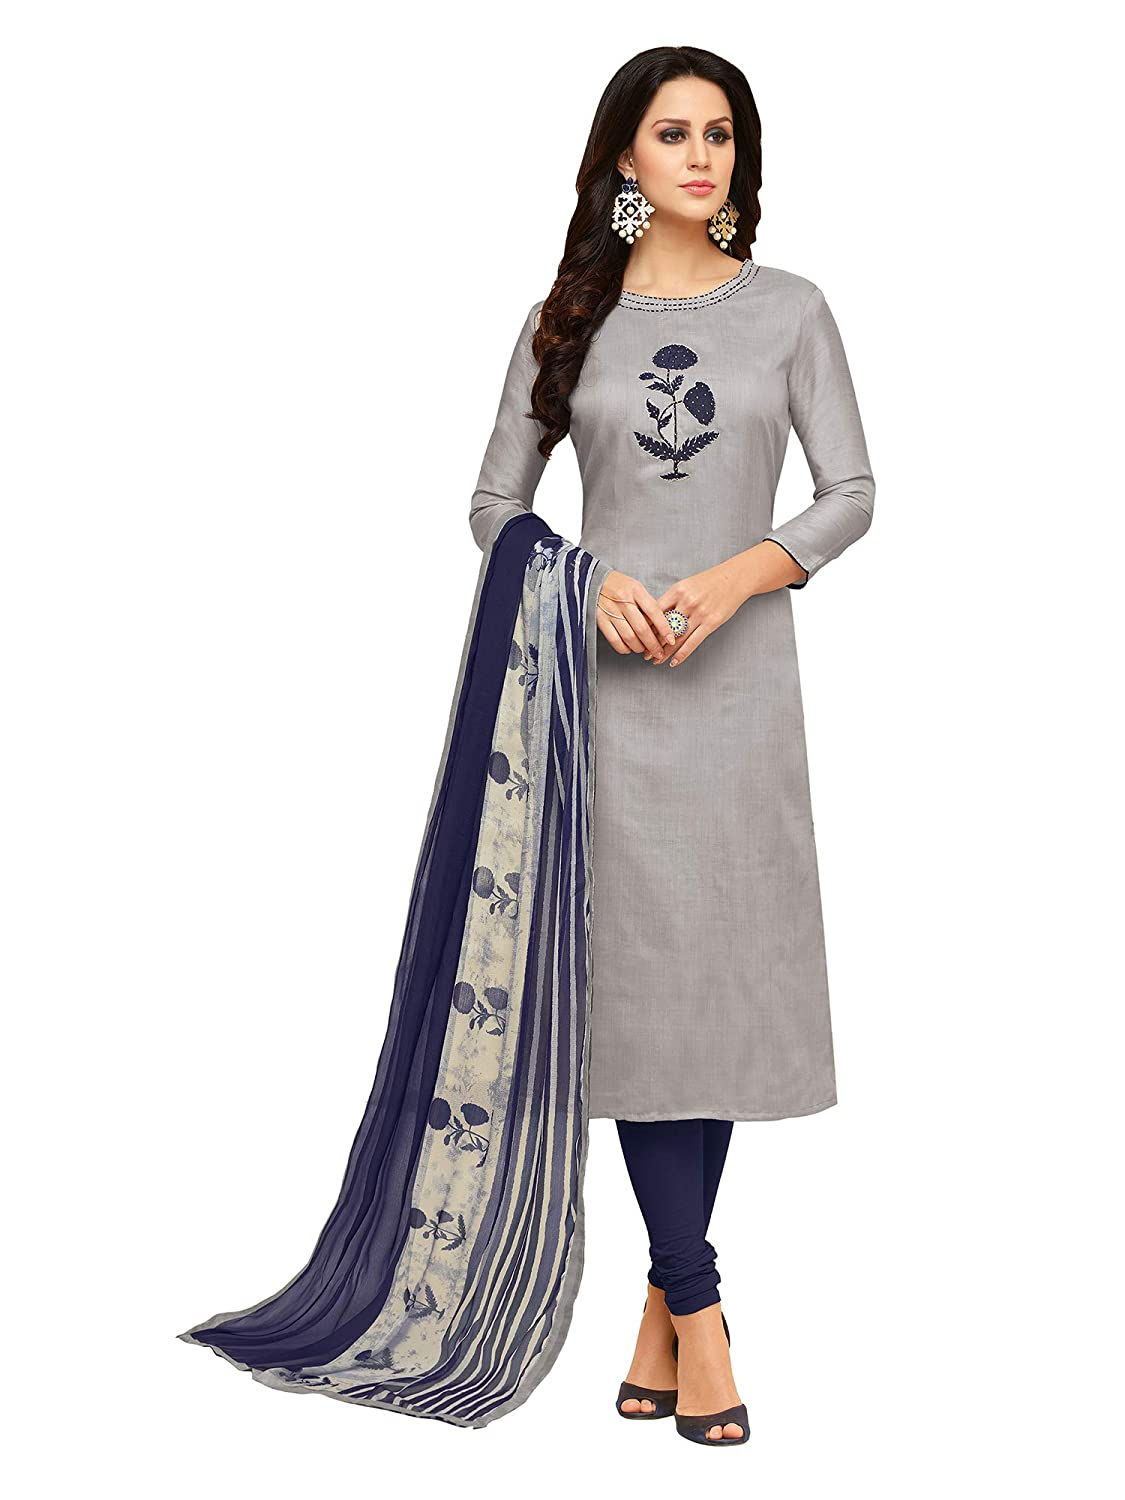 aabcacc9ff Akhilam Womens Chanderi Cotton Dress Material(Salwar Suit Sets For Women  Readymade1009_Grey_Free Size): Amazon.in: Clothing & Accessories